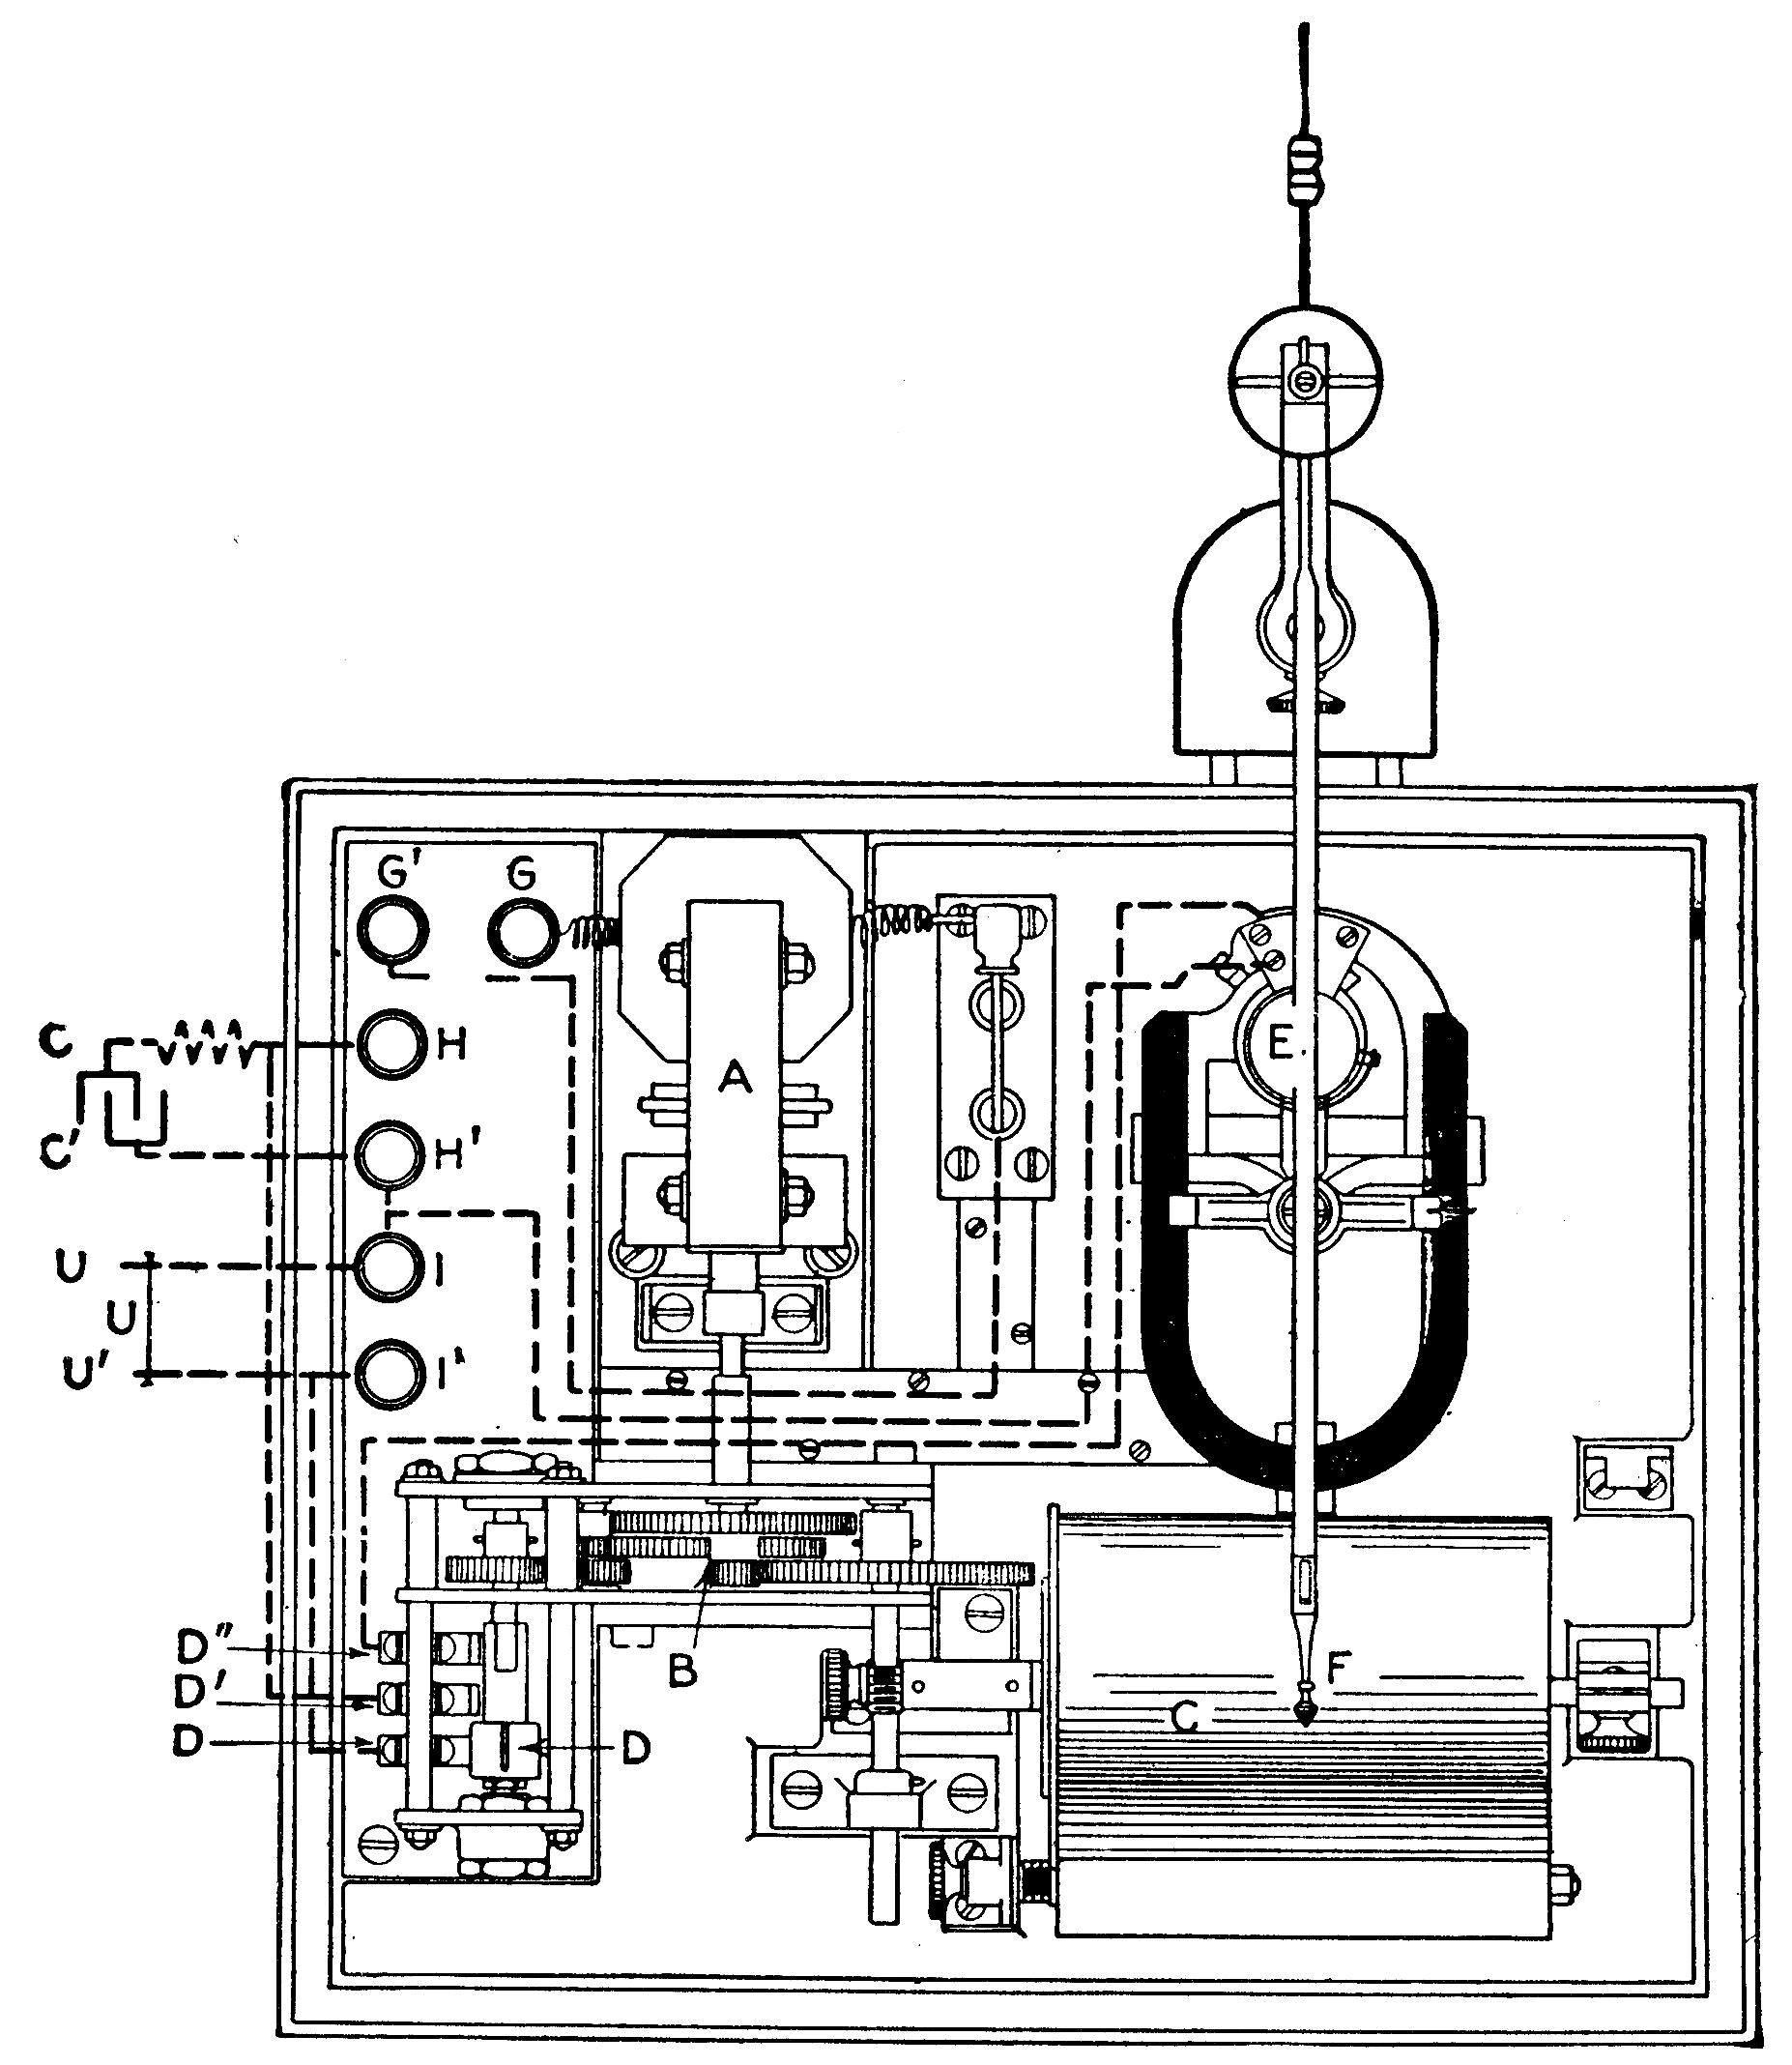 Oscilloscope History This Diagram Http Enacademicru Pictures Enwiki 6 Ing01png Hospitalier Ondograph